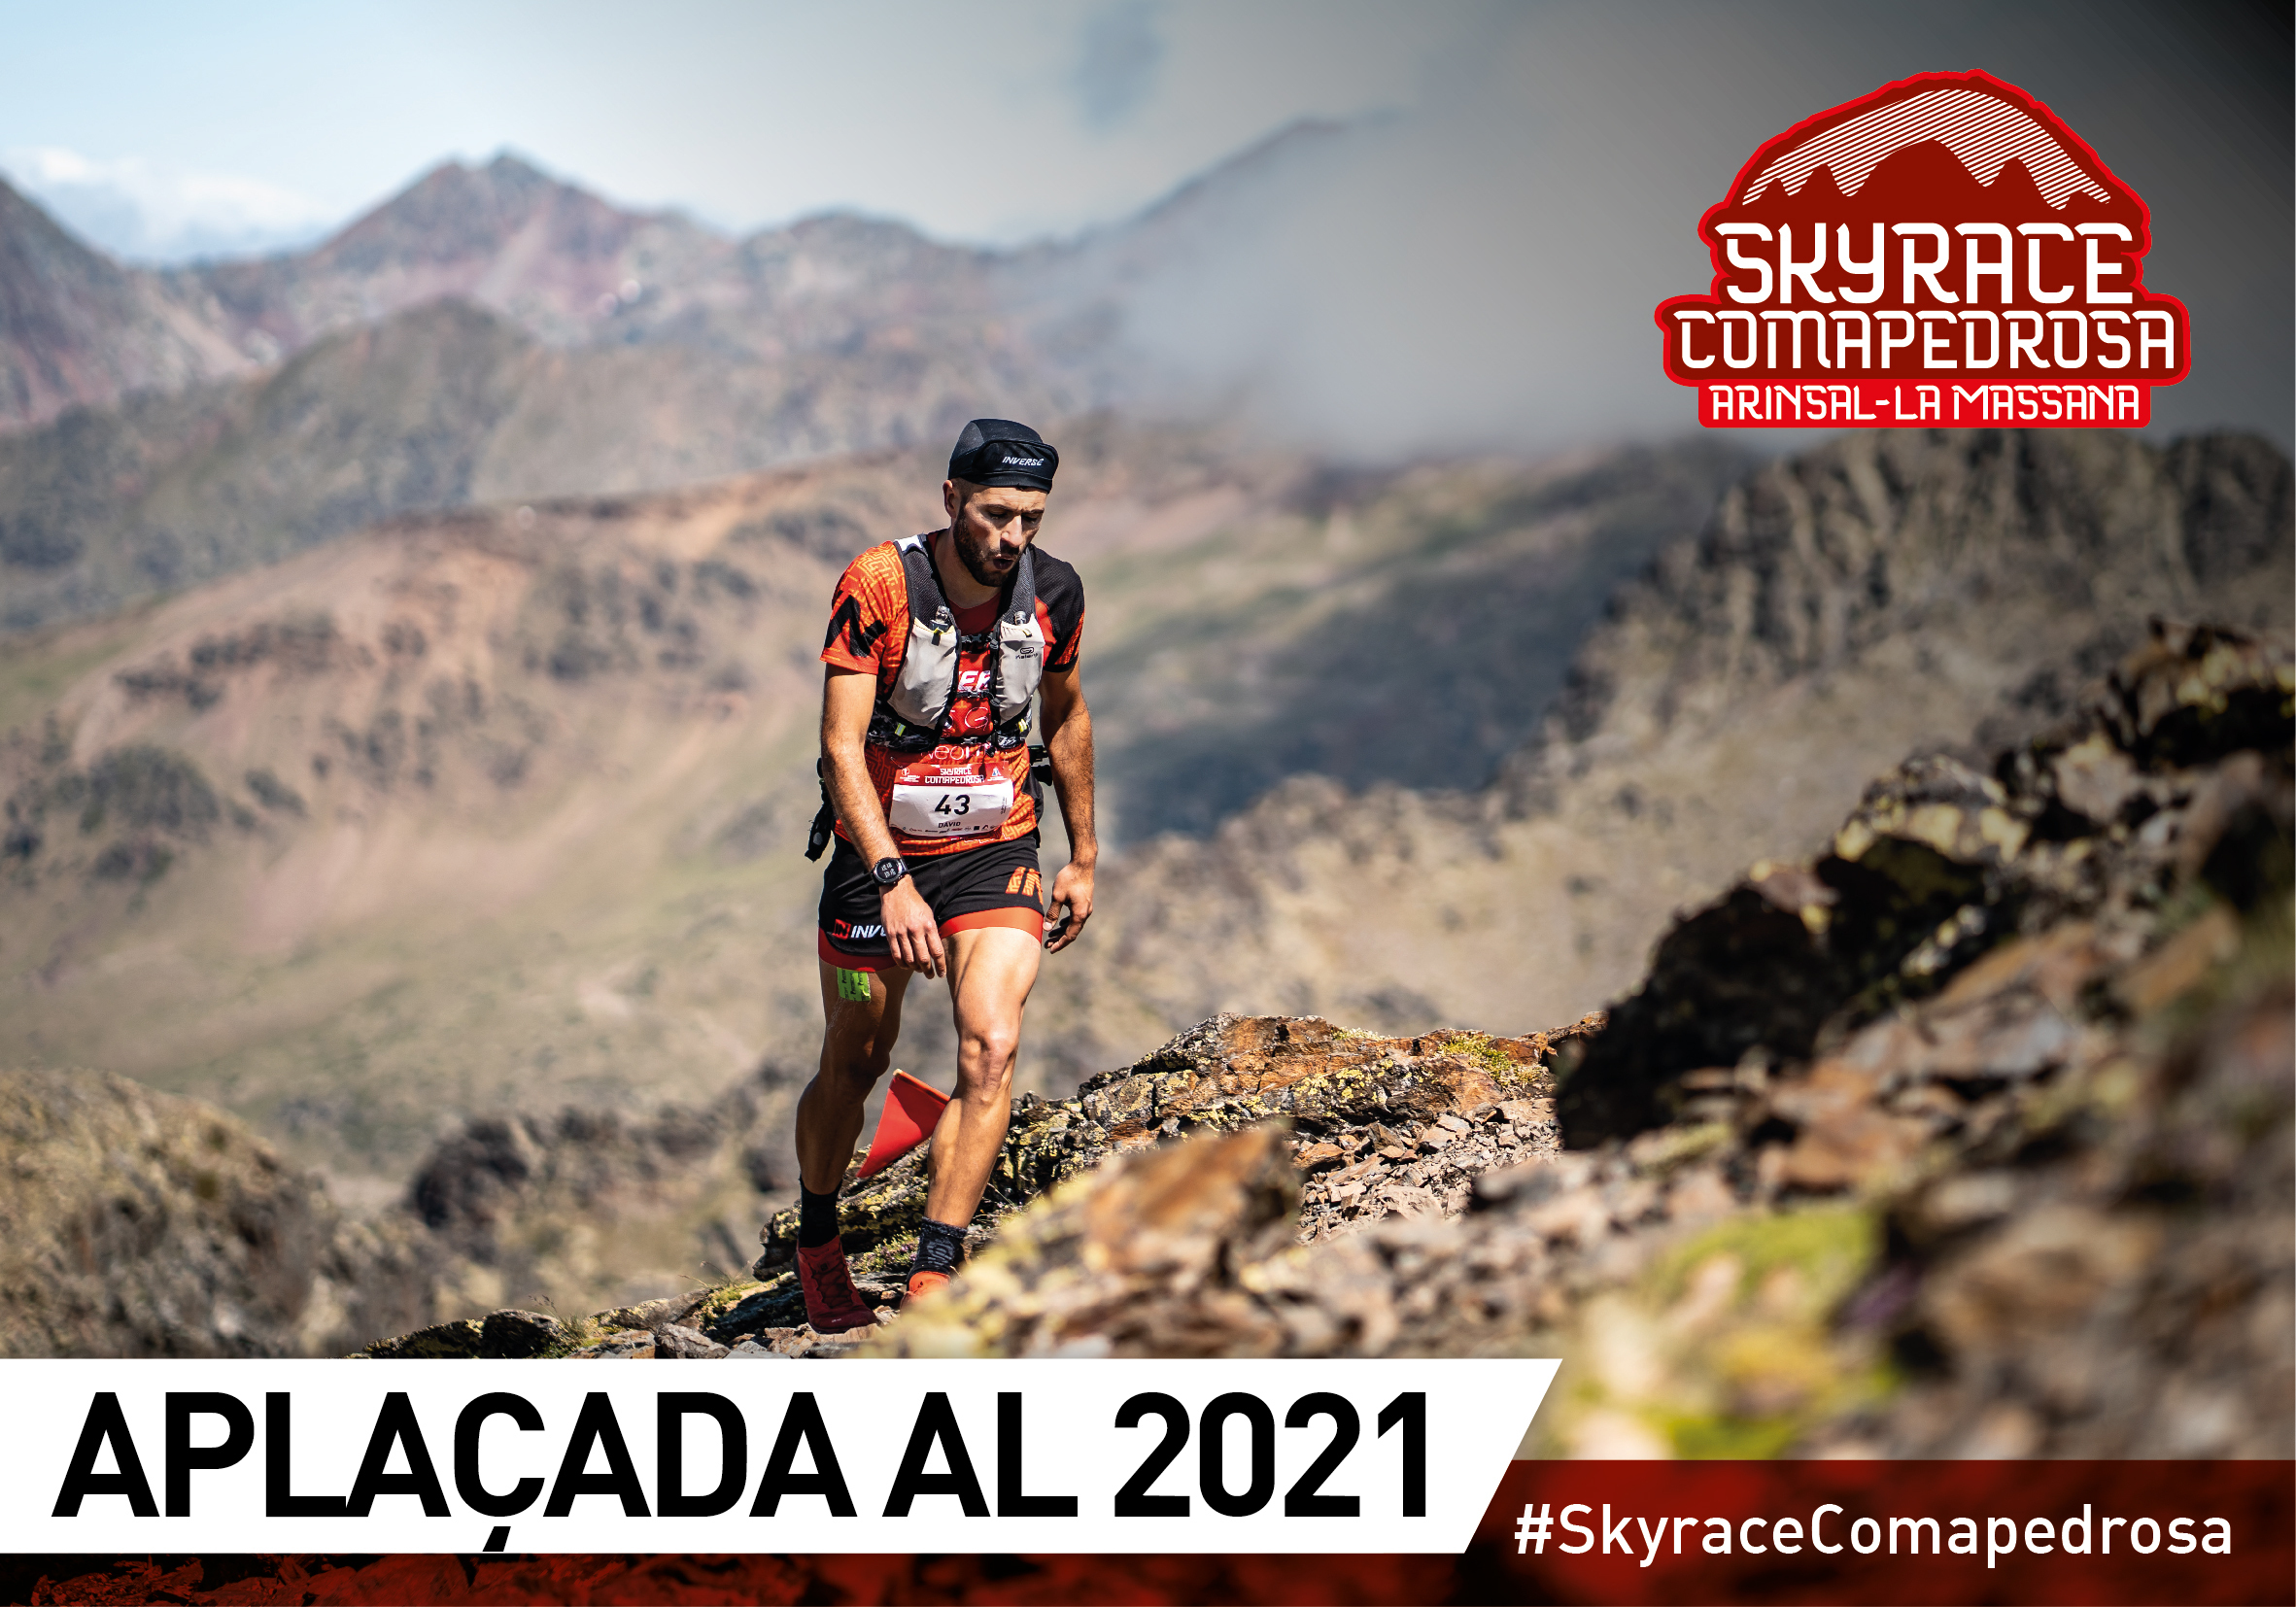 OFFICIAL STATEMENT FROM SKYRACE COMAPEDROSA 2020 SKYRUNNER WORLD SERIES SUPER SKY